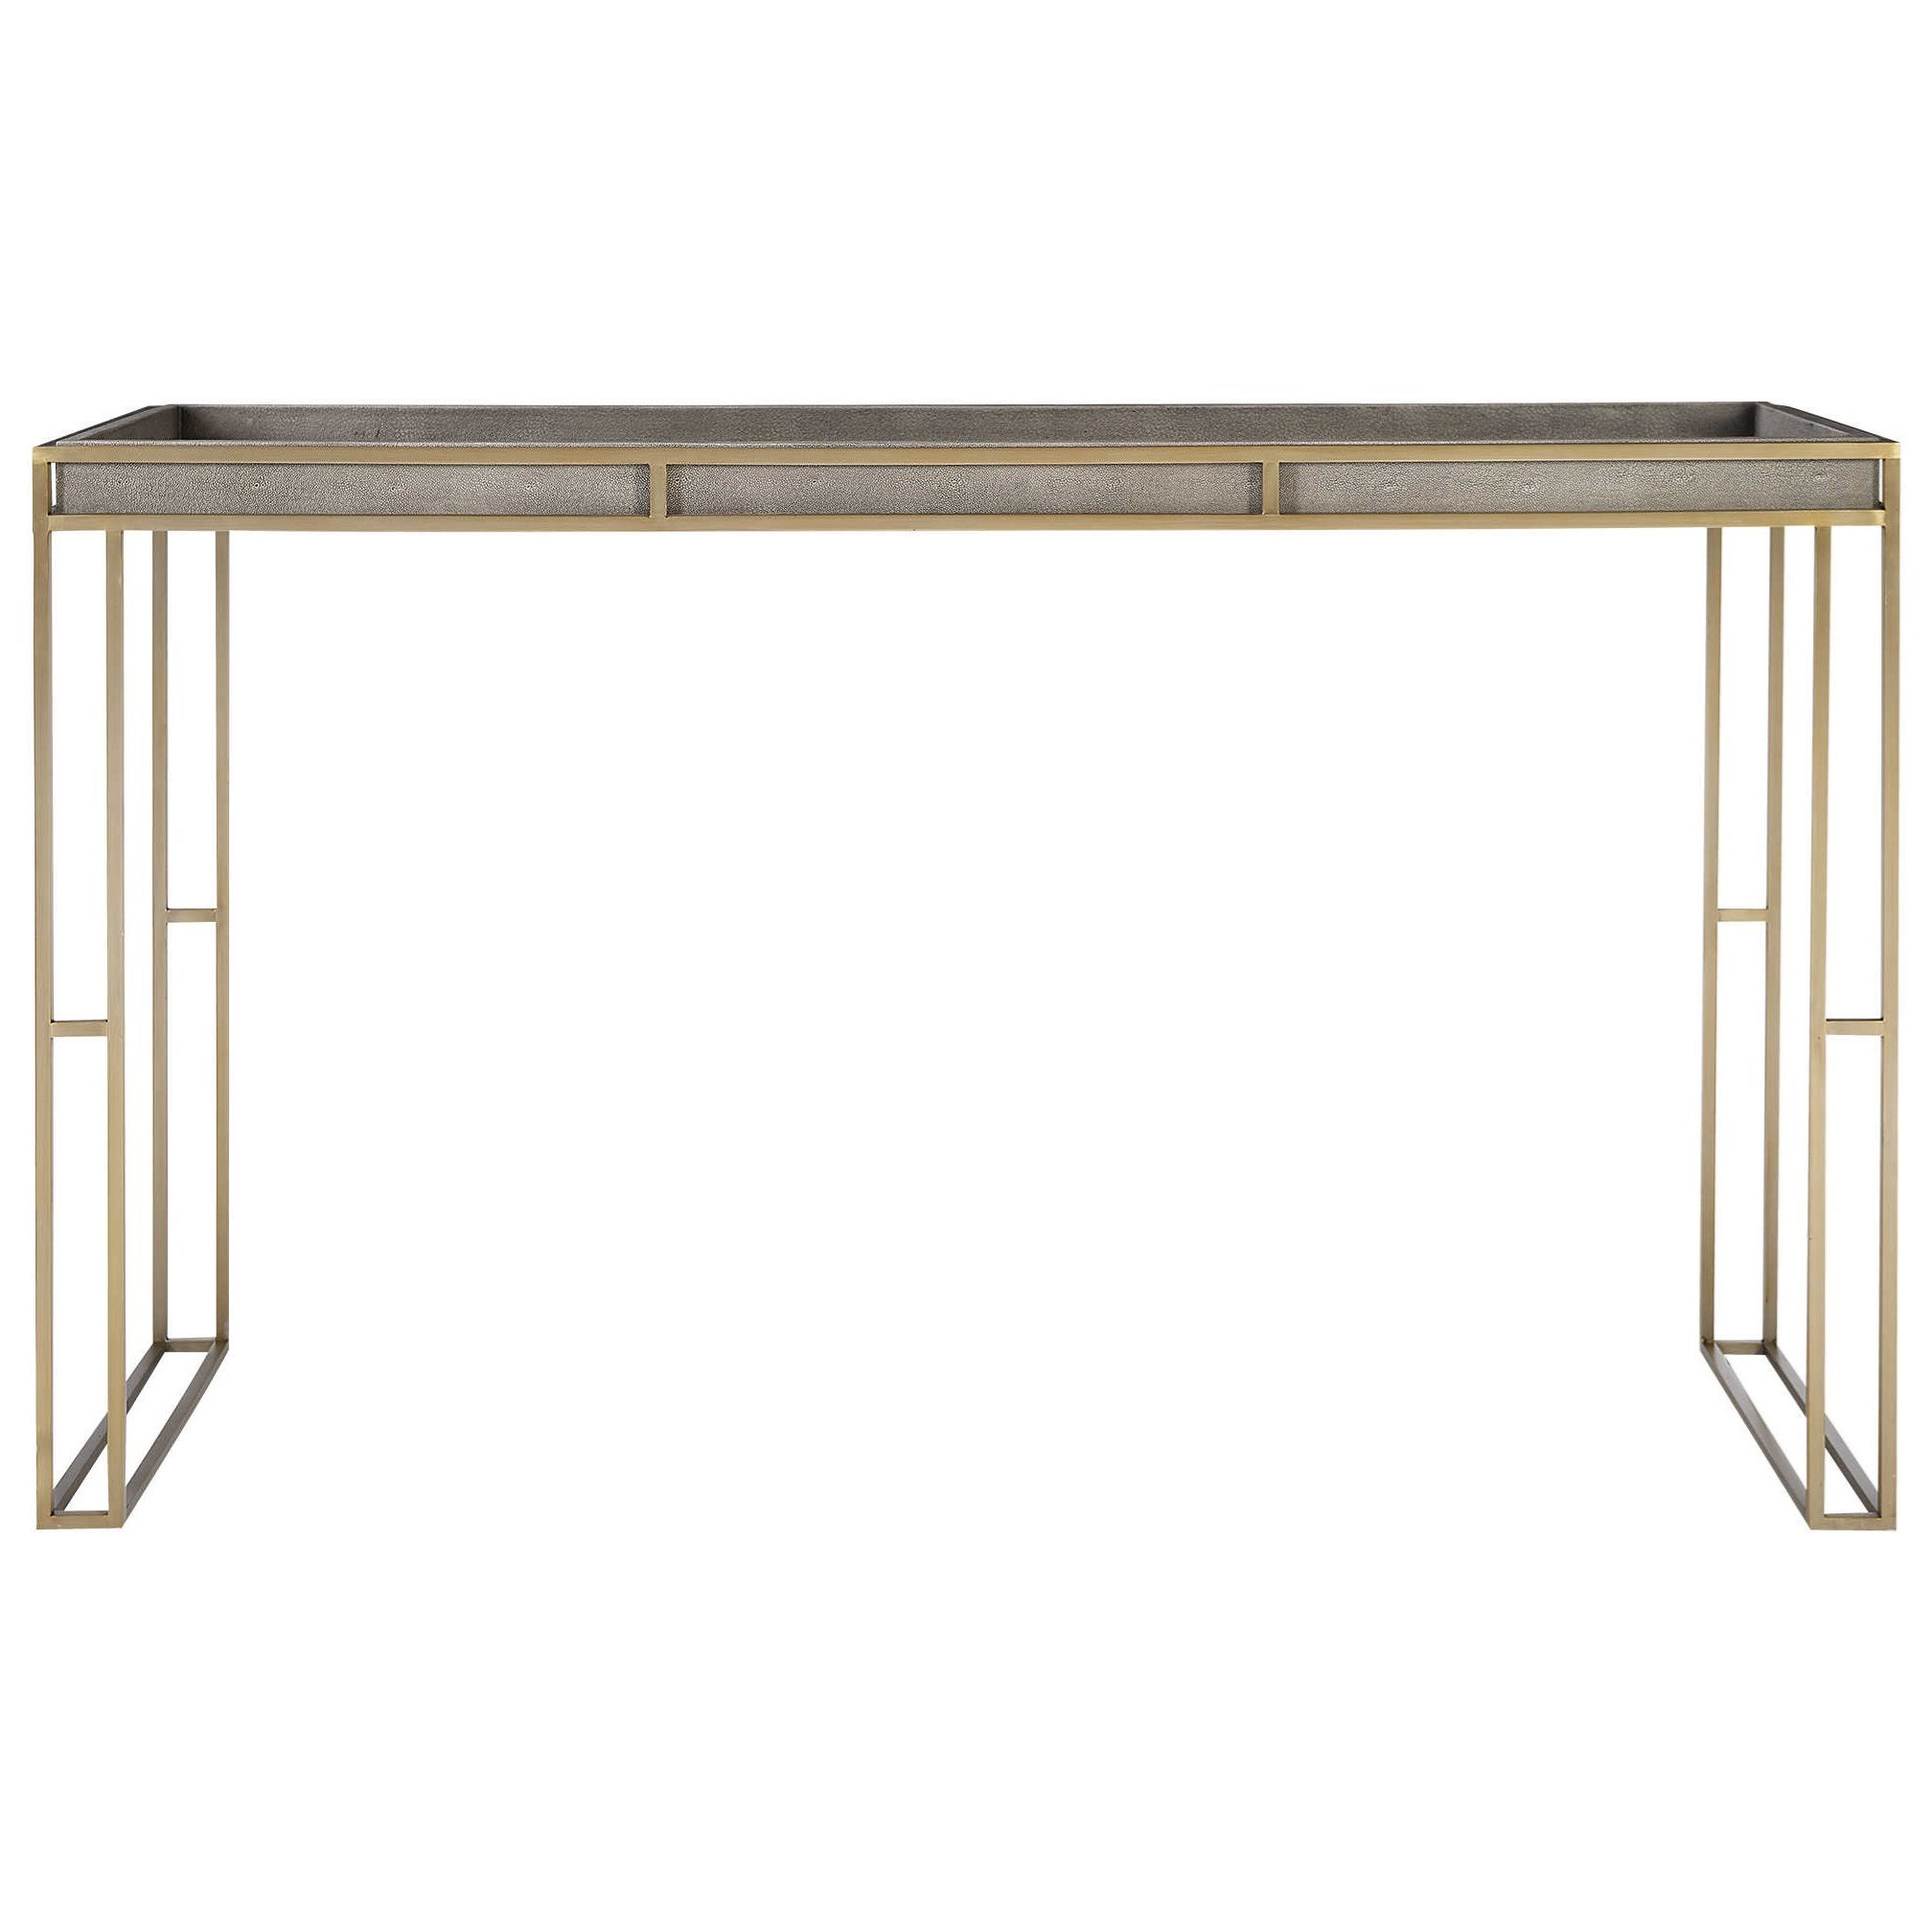 Accent Furniture - Occasional Tables Cardew Modern Console Table by Uttermost at Suburban Furniture